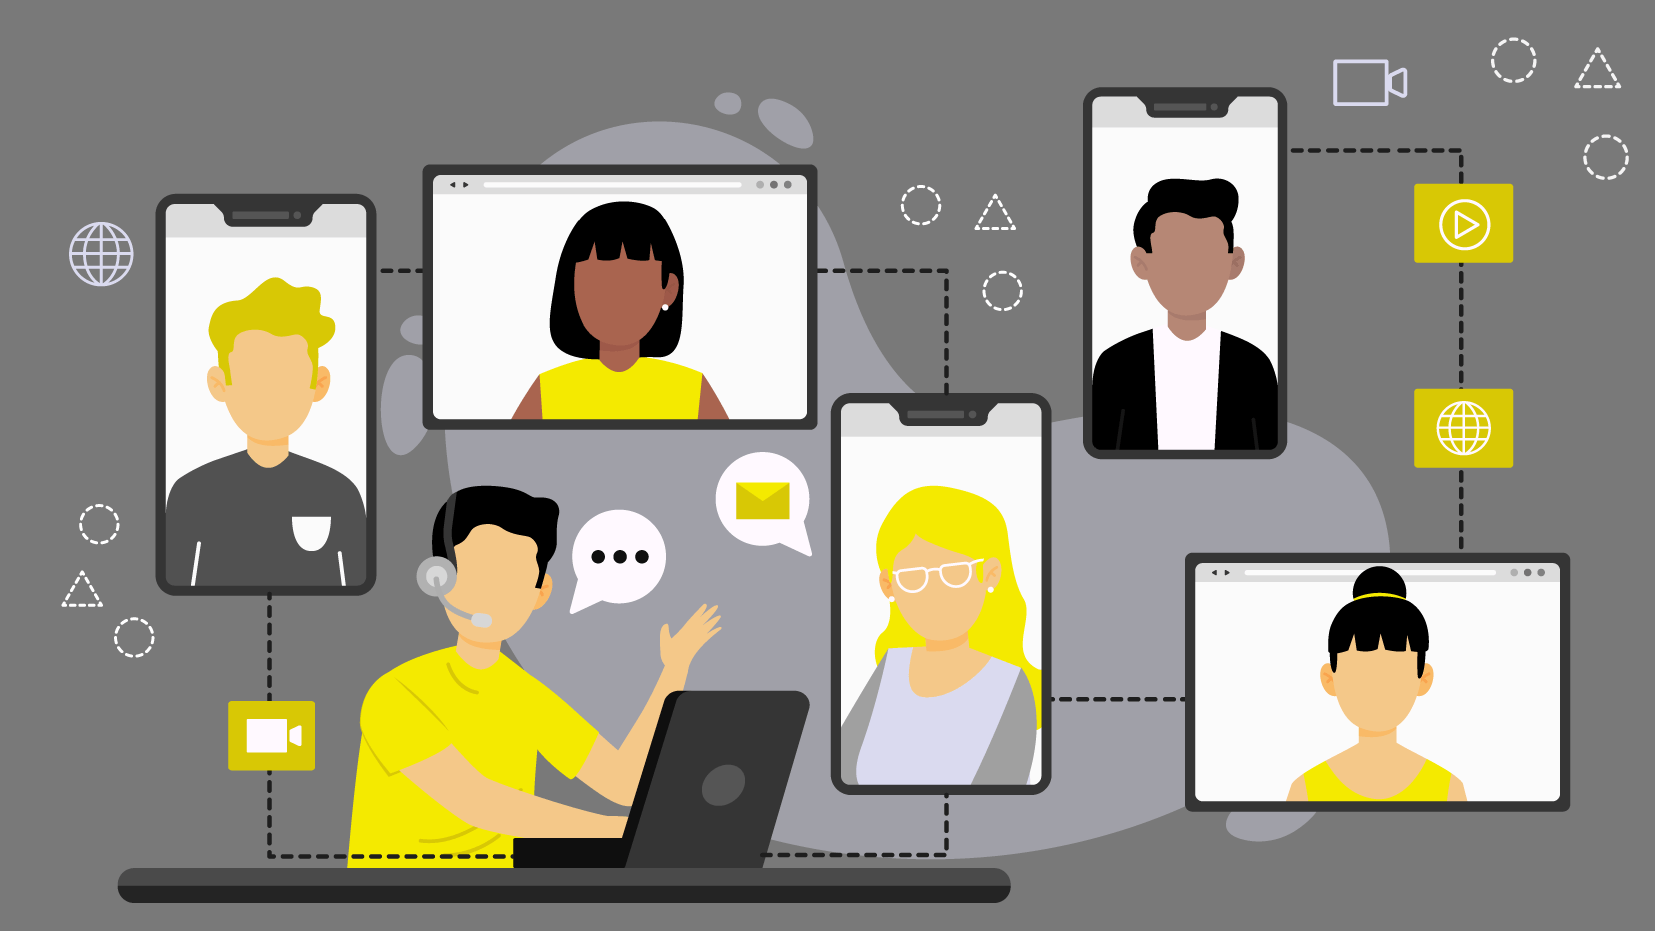 Video Conferencing Smoothly: Tips From Experienced Zoomers